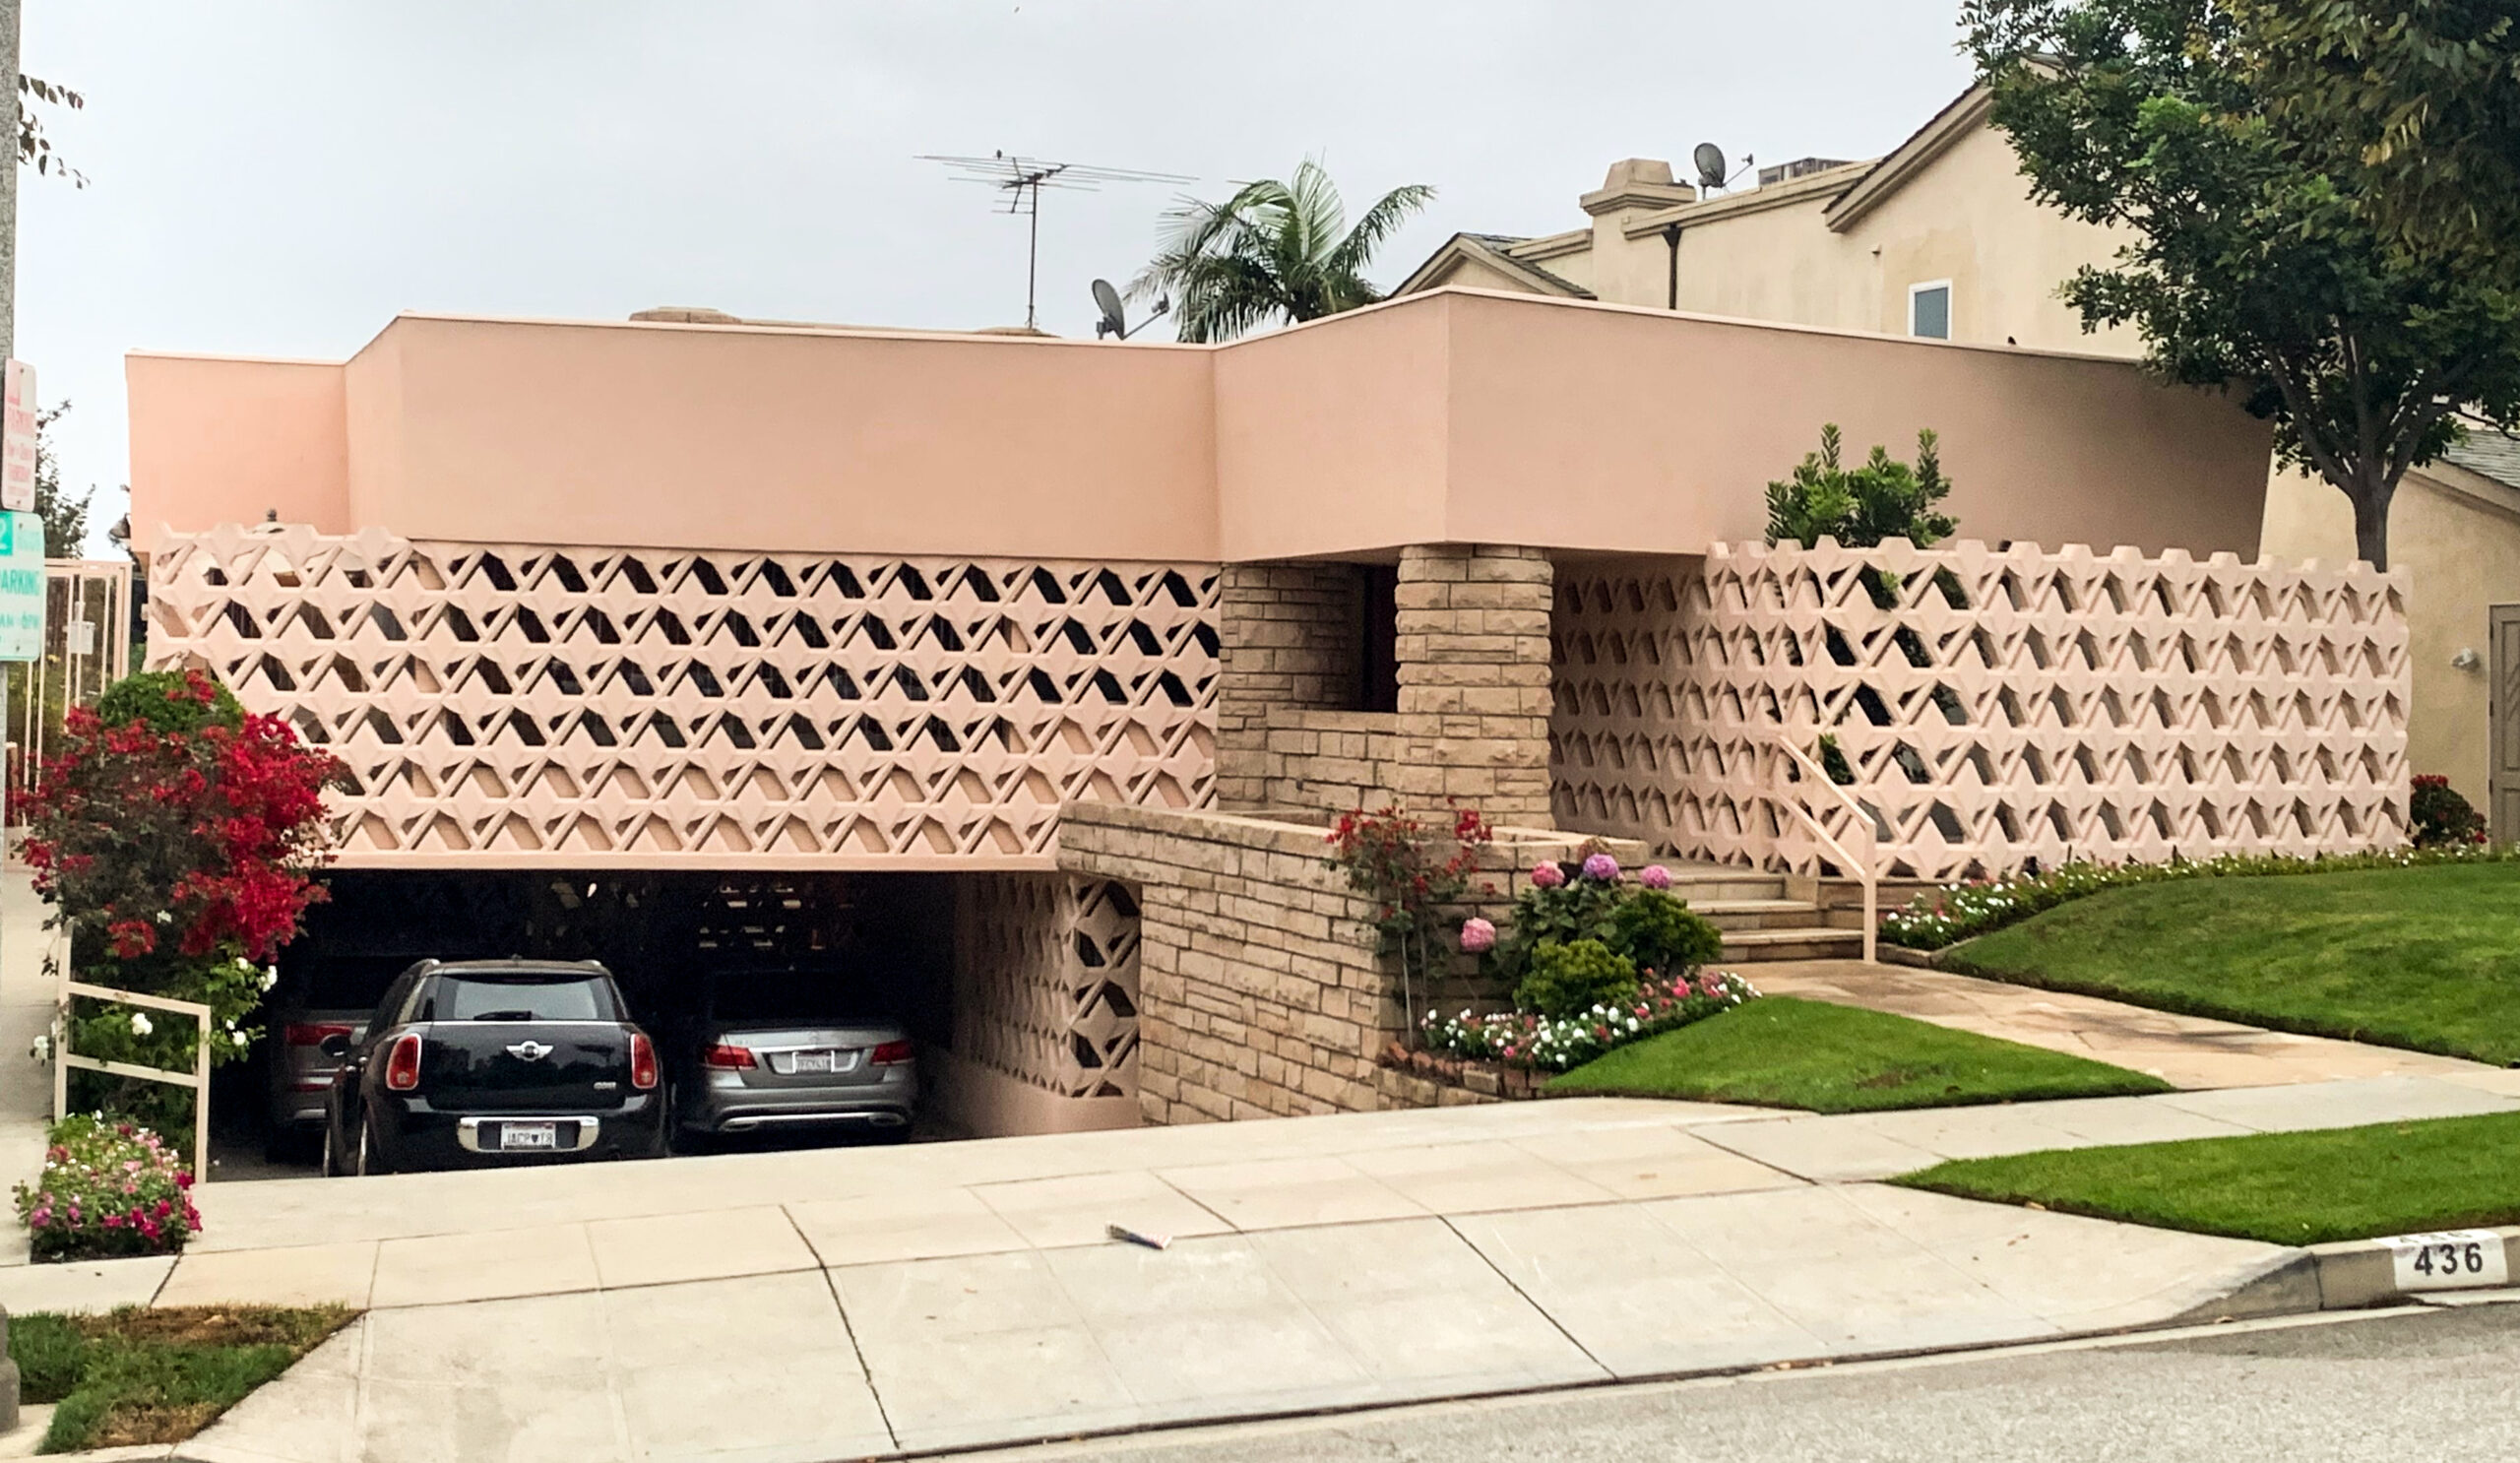 A pink home with textured pink blocks that wrap around the facade